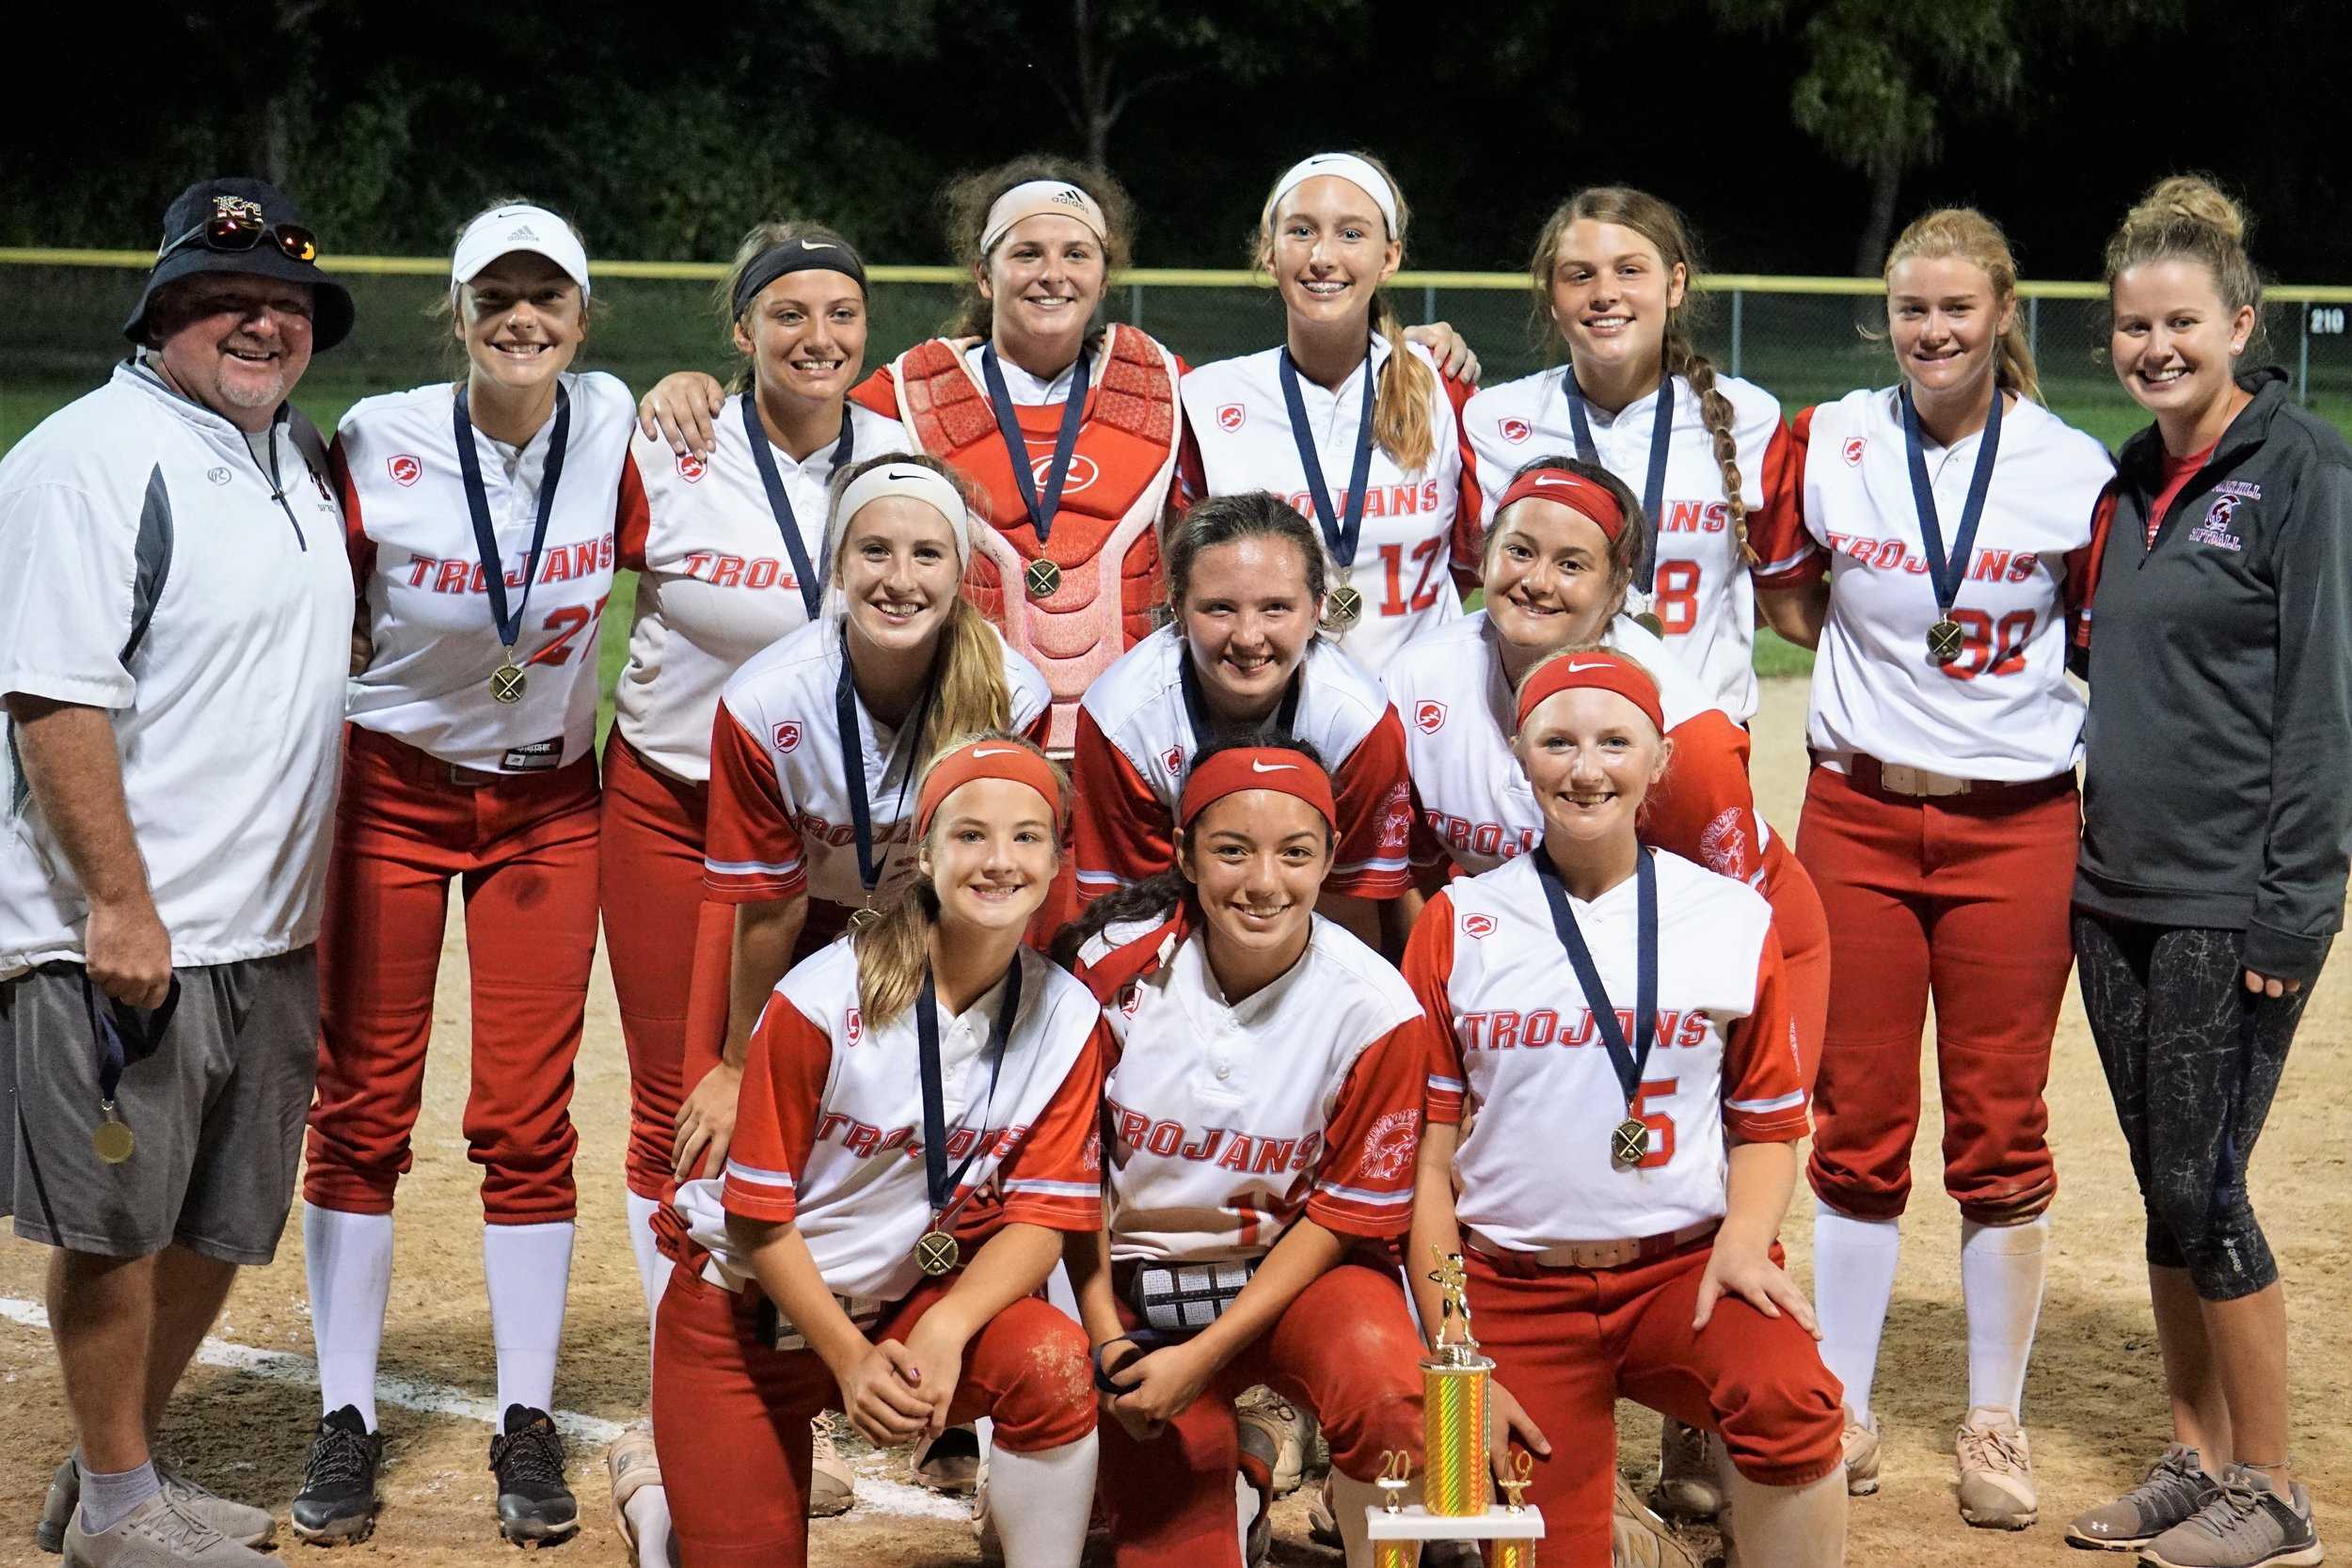 Contributed photo The Park Hill softball team took first place at the Greater Kansas City Softball Invitational, ending with a 5-2 win against Ray-Pec in the championship game on Saturday, Aug. 31 in Independence.